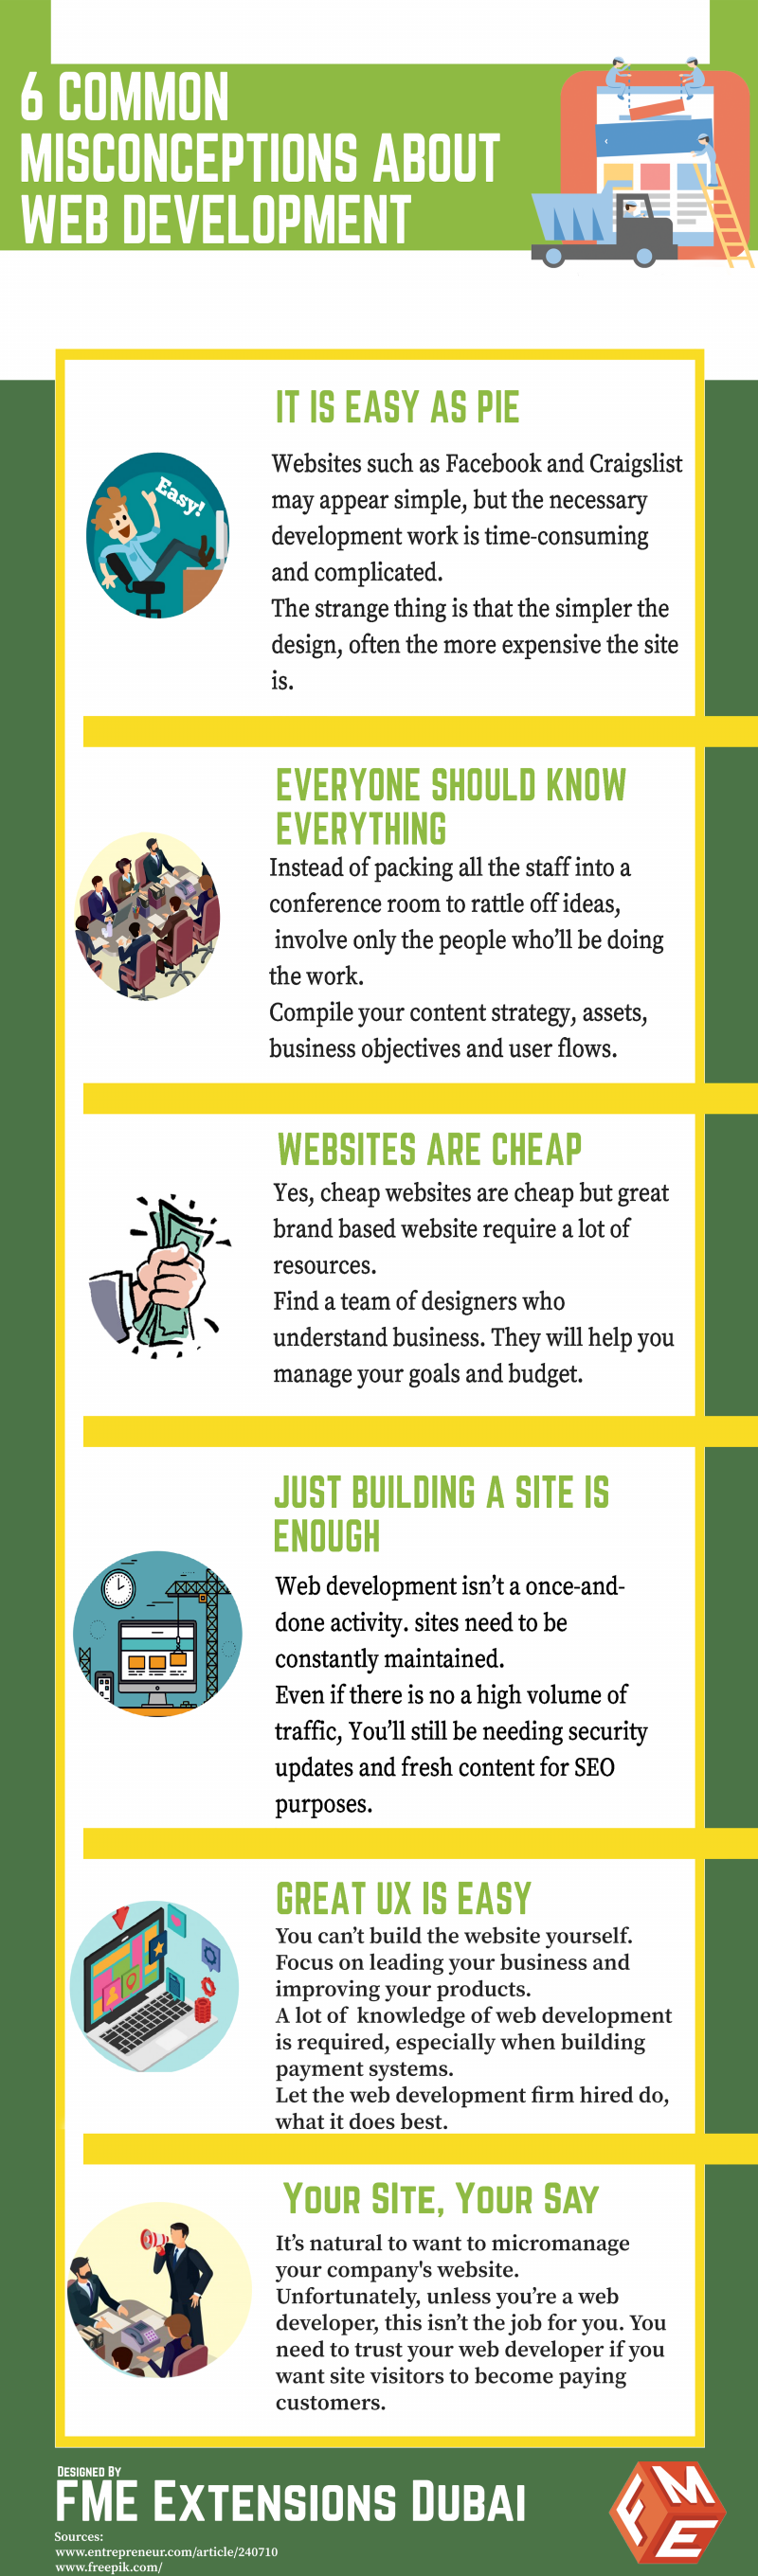 6-Common-Misconceptions-About-Web-Development-Infograpic